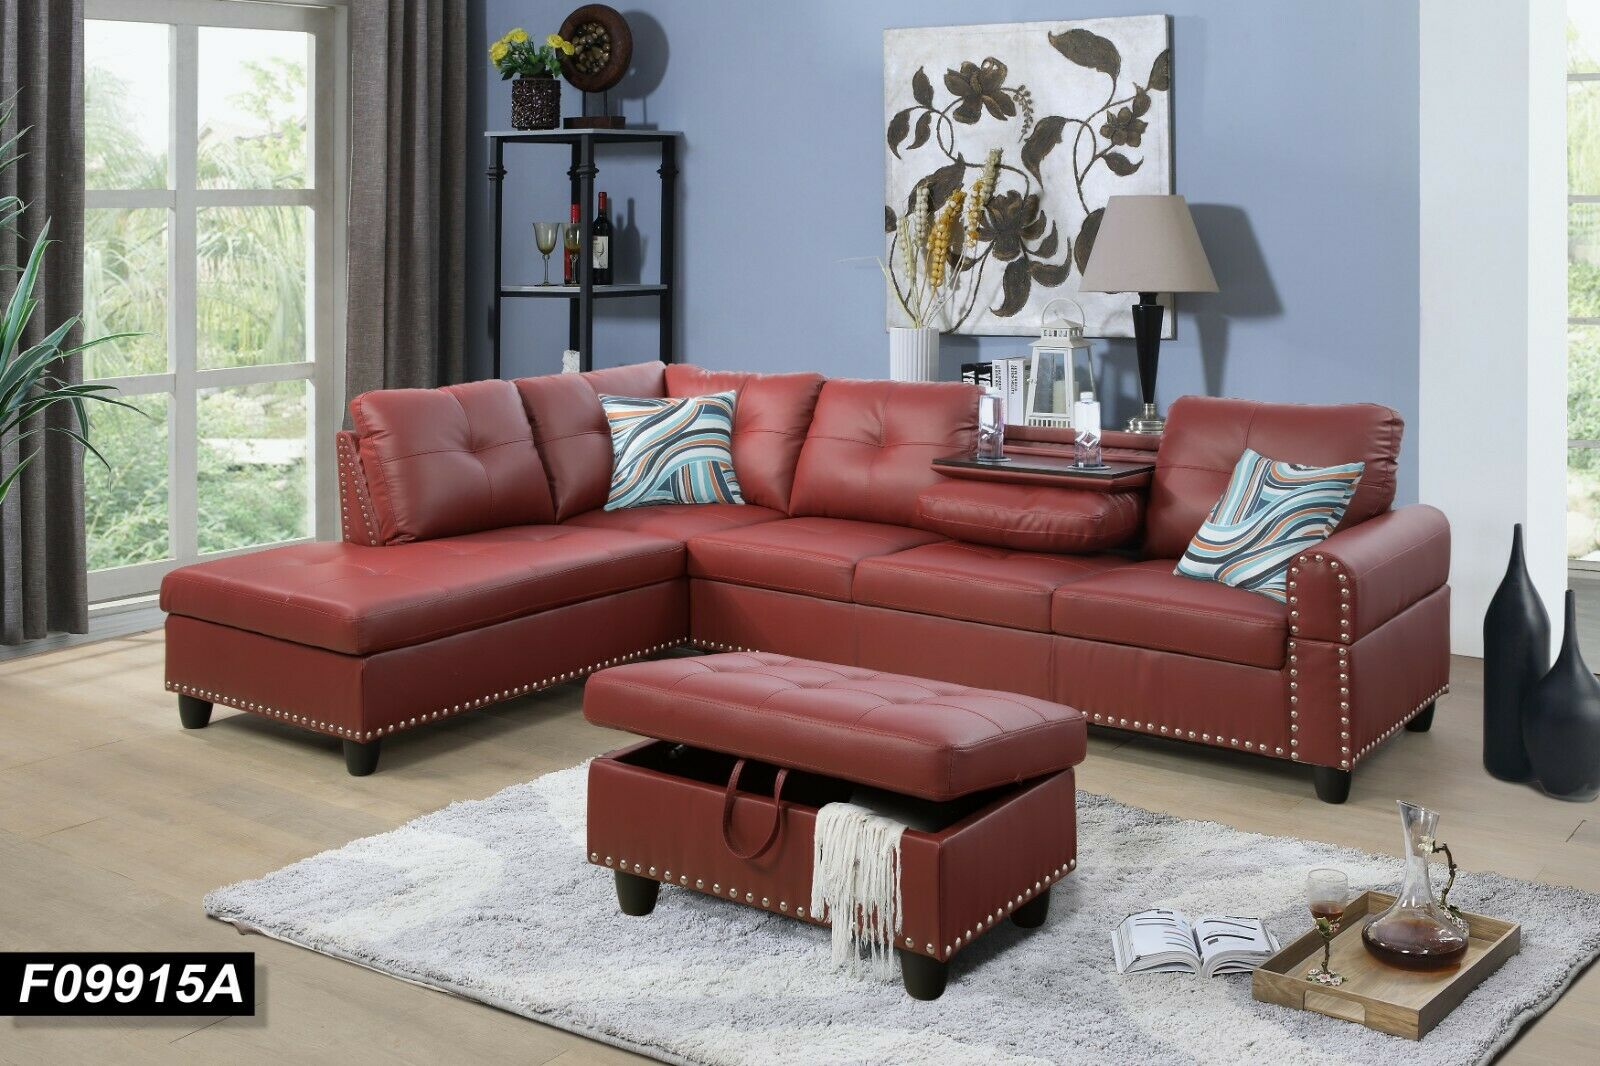 Picture of: Camel Dark Brown Faux Leather Sofa Set W Coffee Table 4p American Eagle Ae D816 For Sale Online Ebay